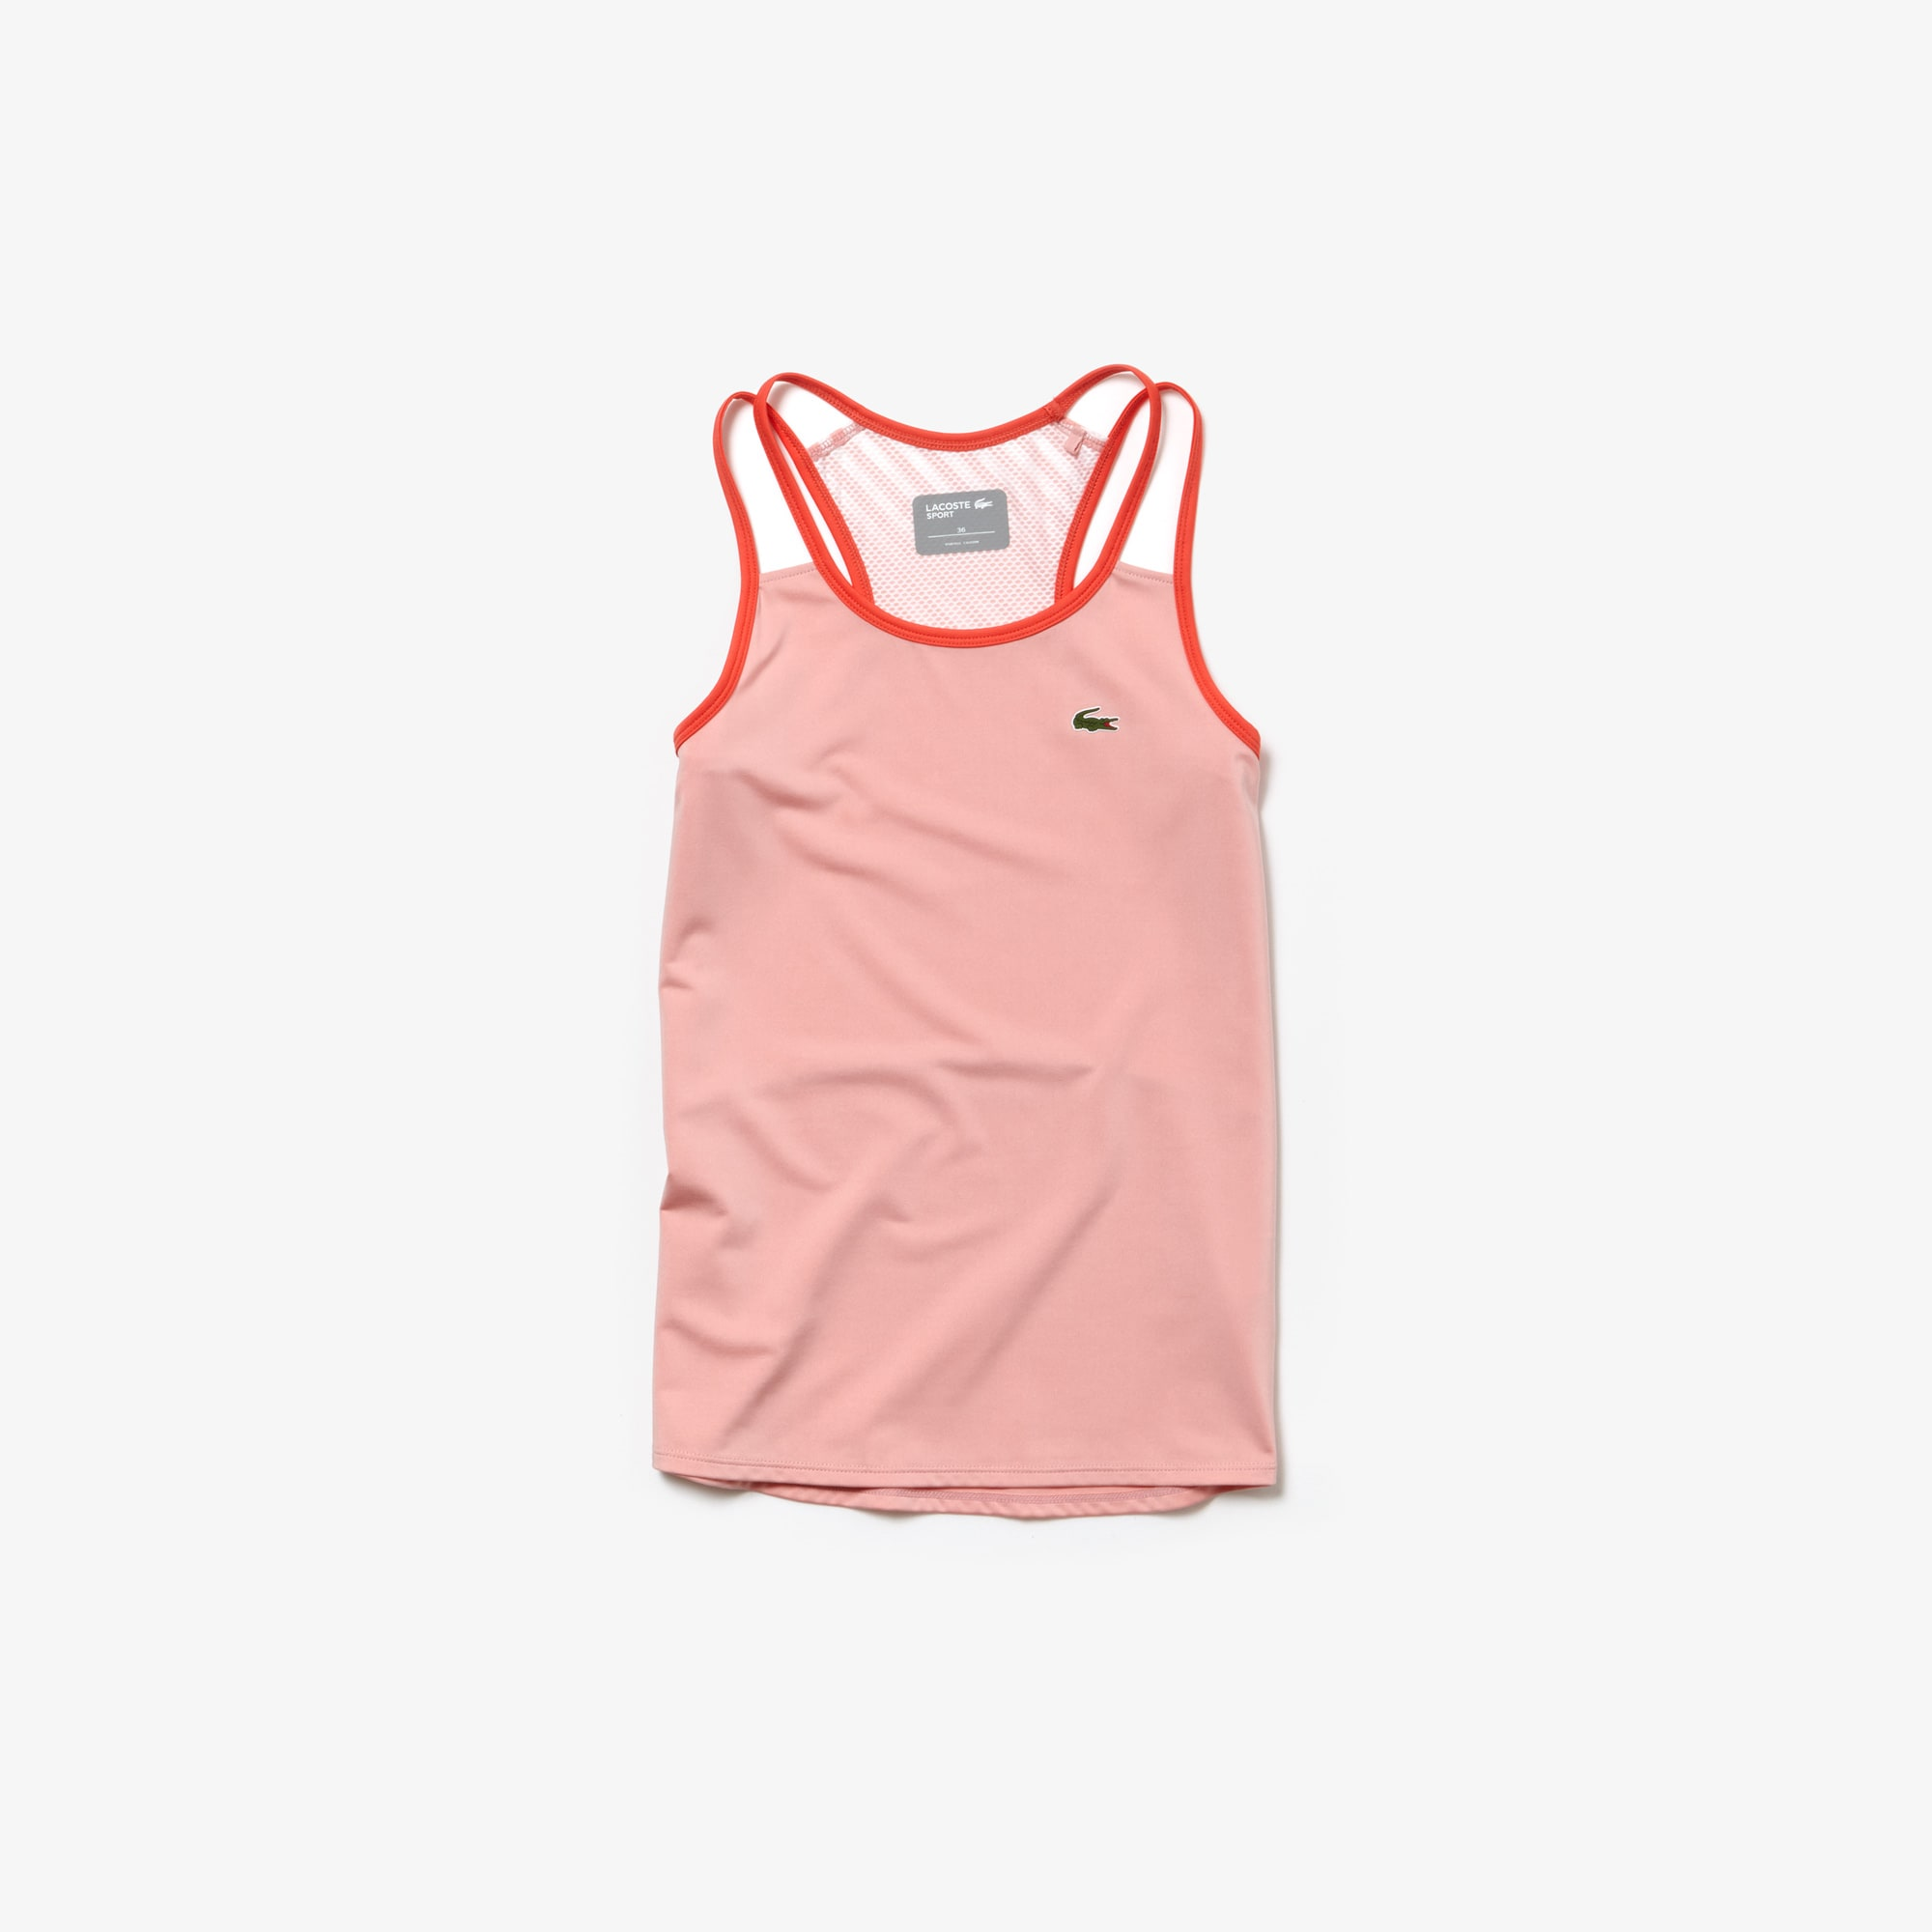 Women's SPORT Tech Jersey Racerback Tennis Tank Top